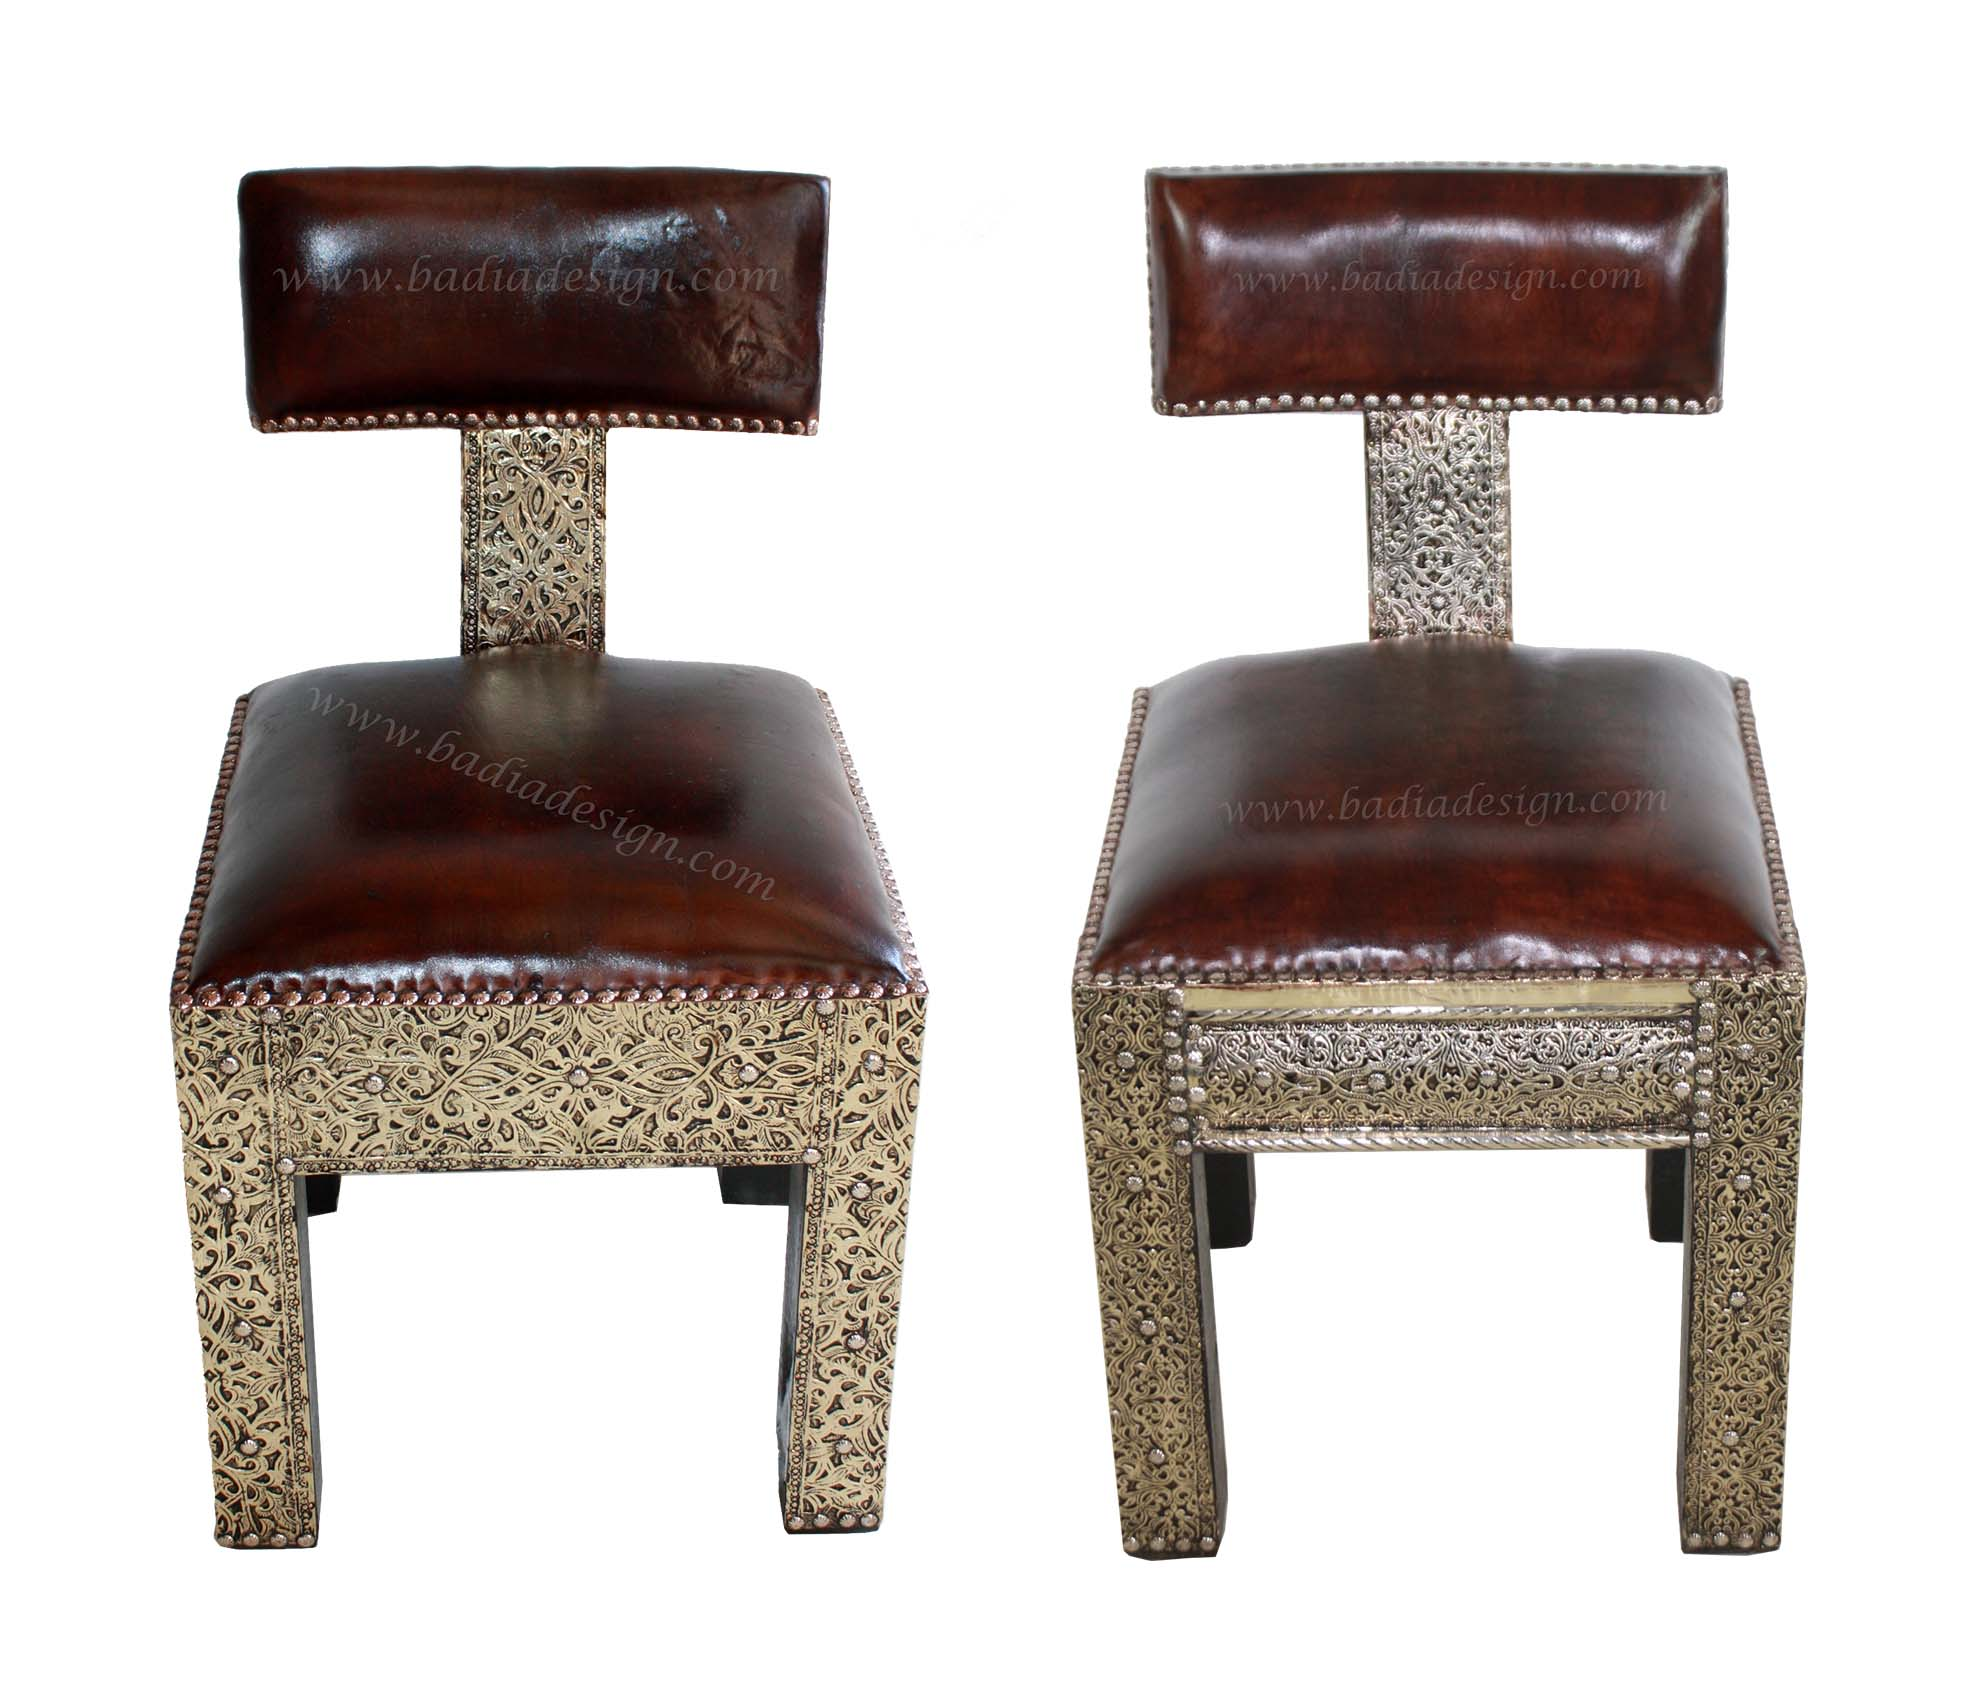 moroccan-metal-and-hard-leather-chair-ml-ch010.jpg